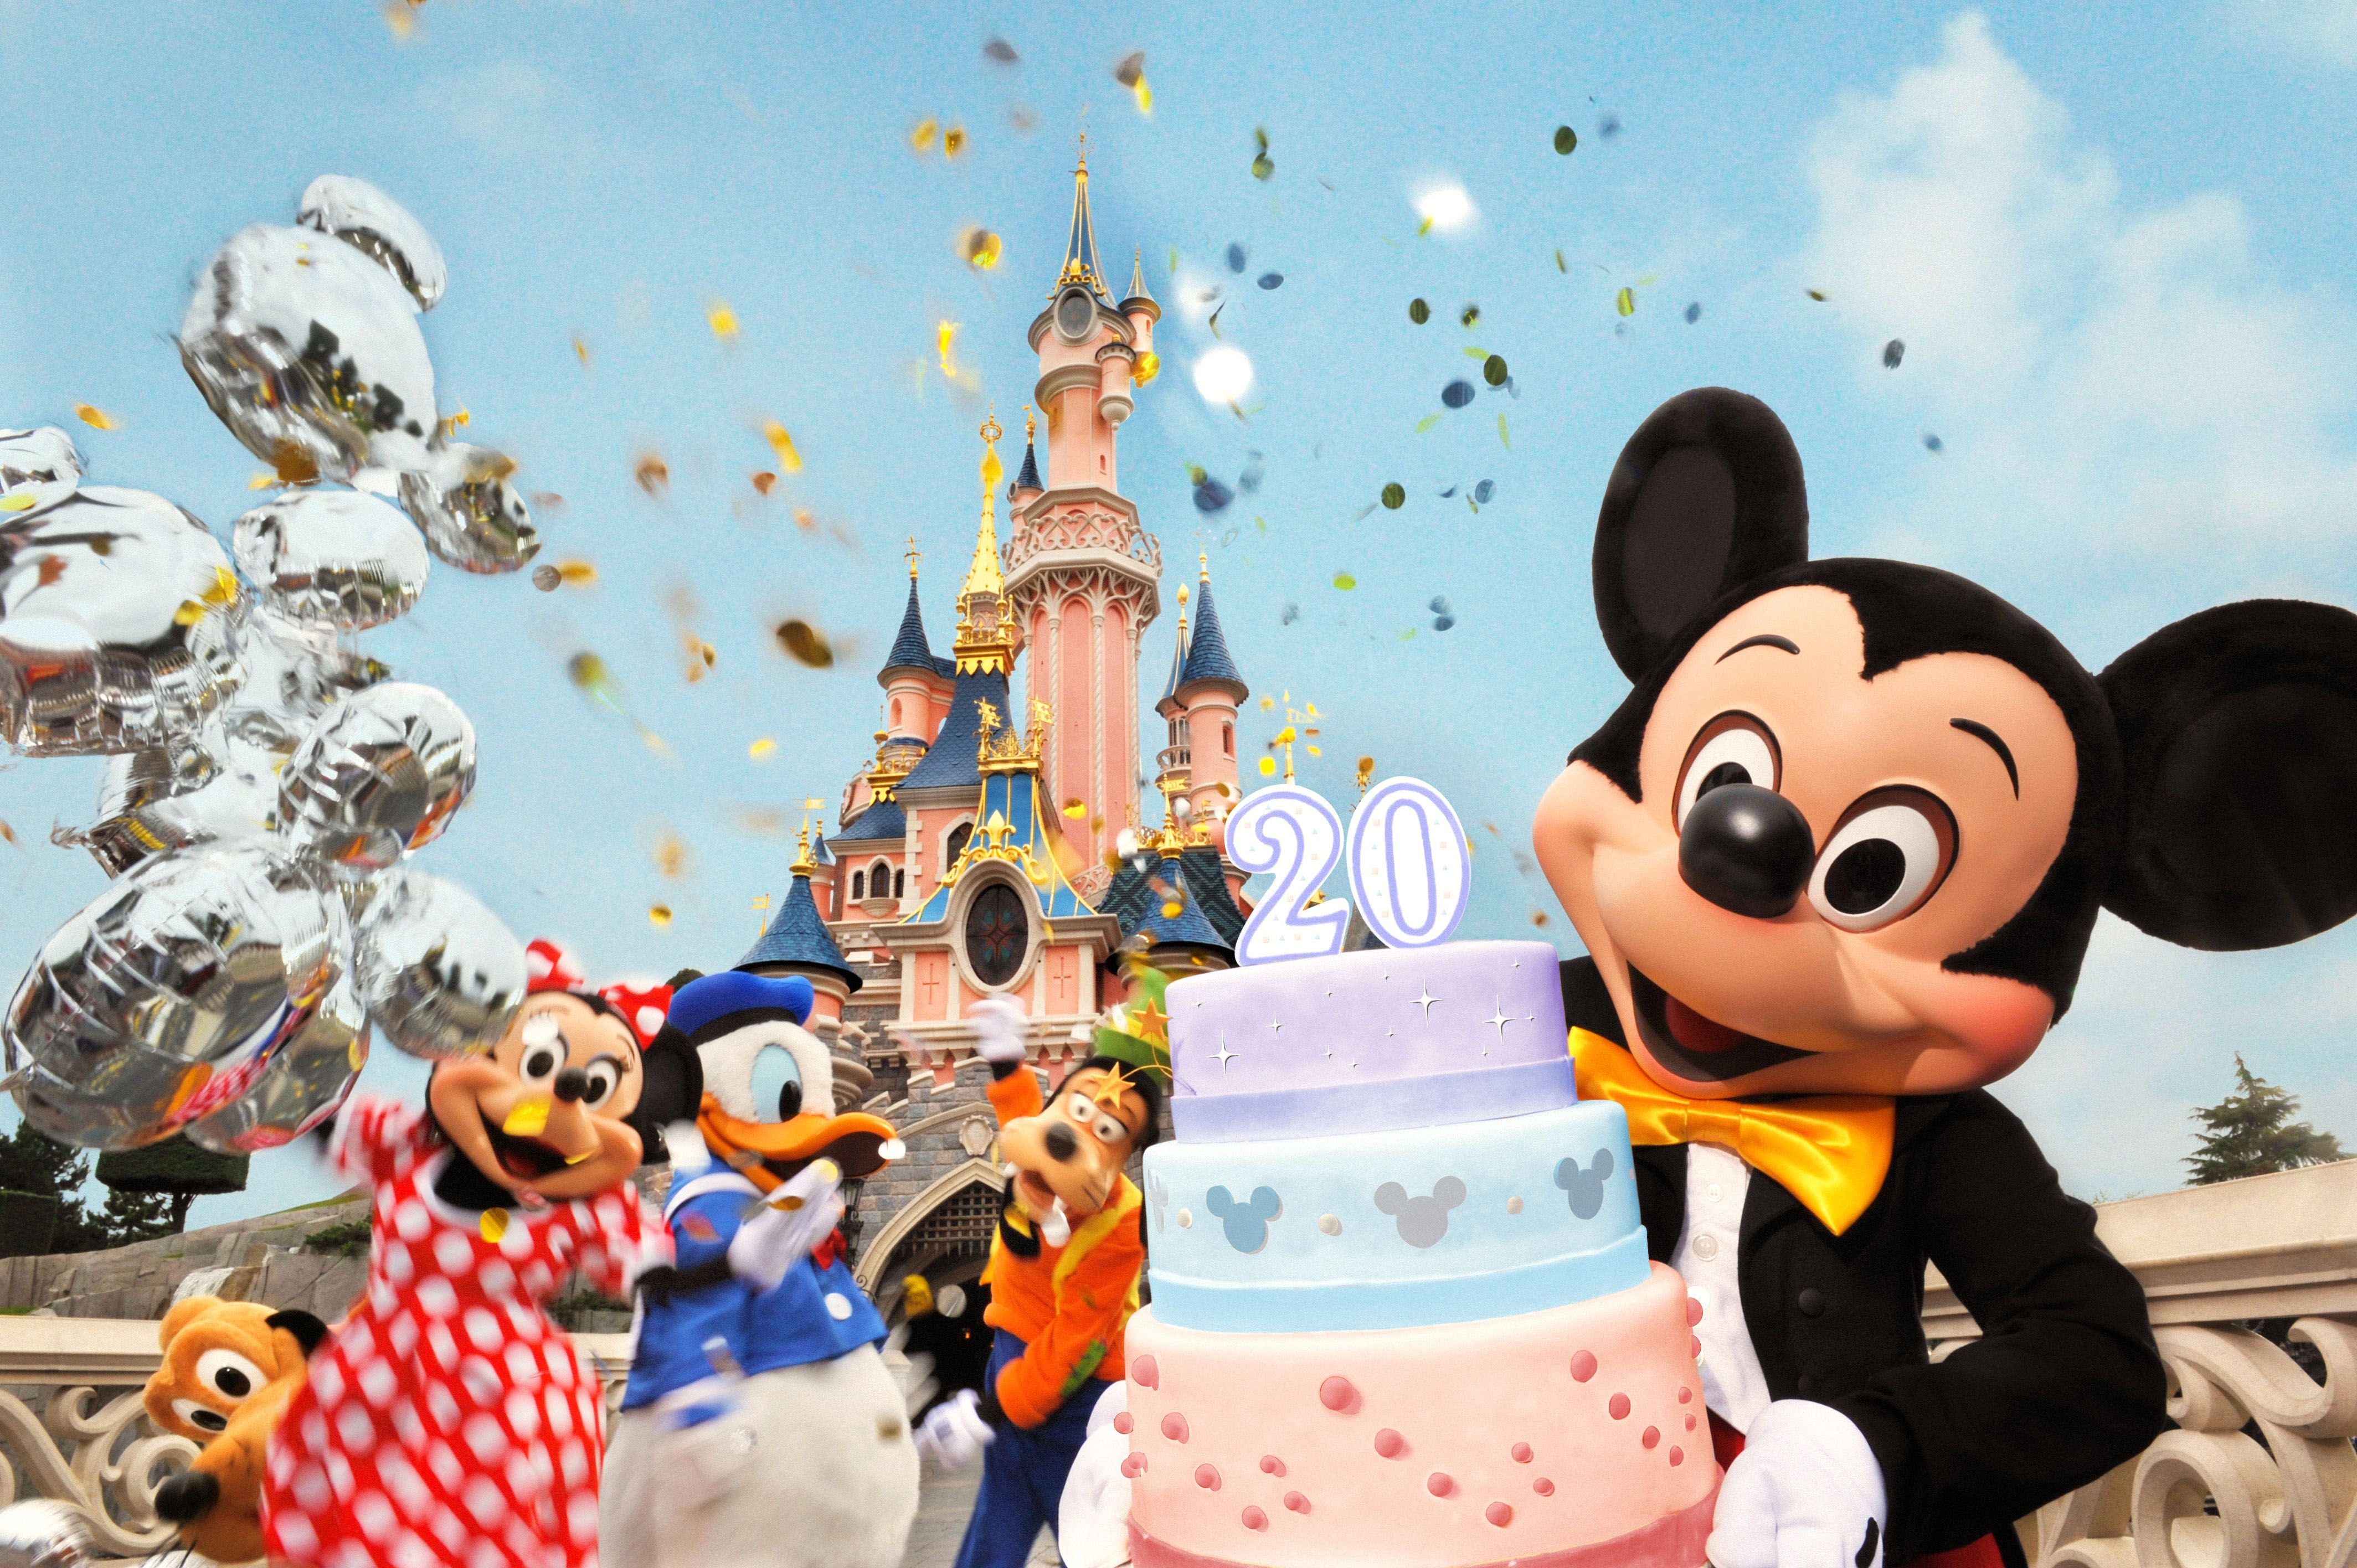 Happy birthday Disneyland Paris 20 years and counting at